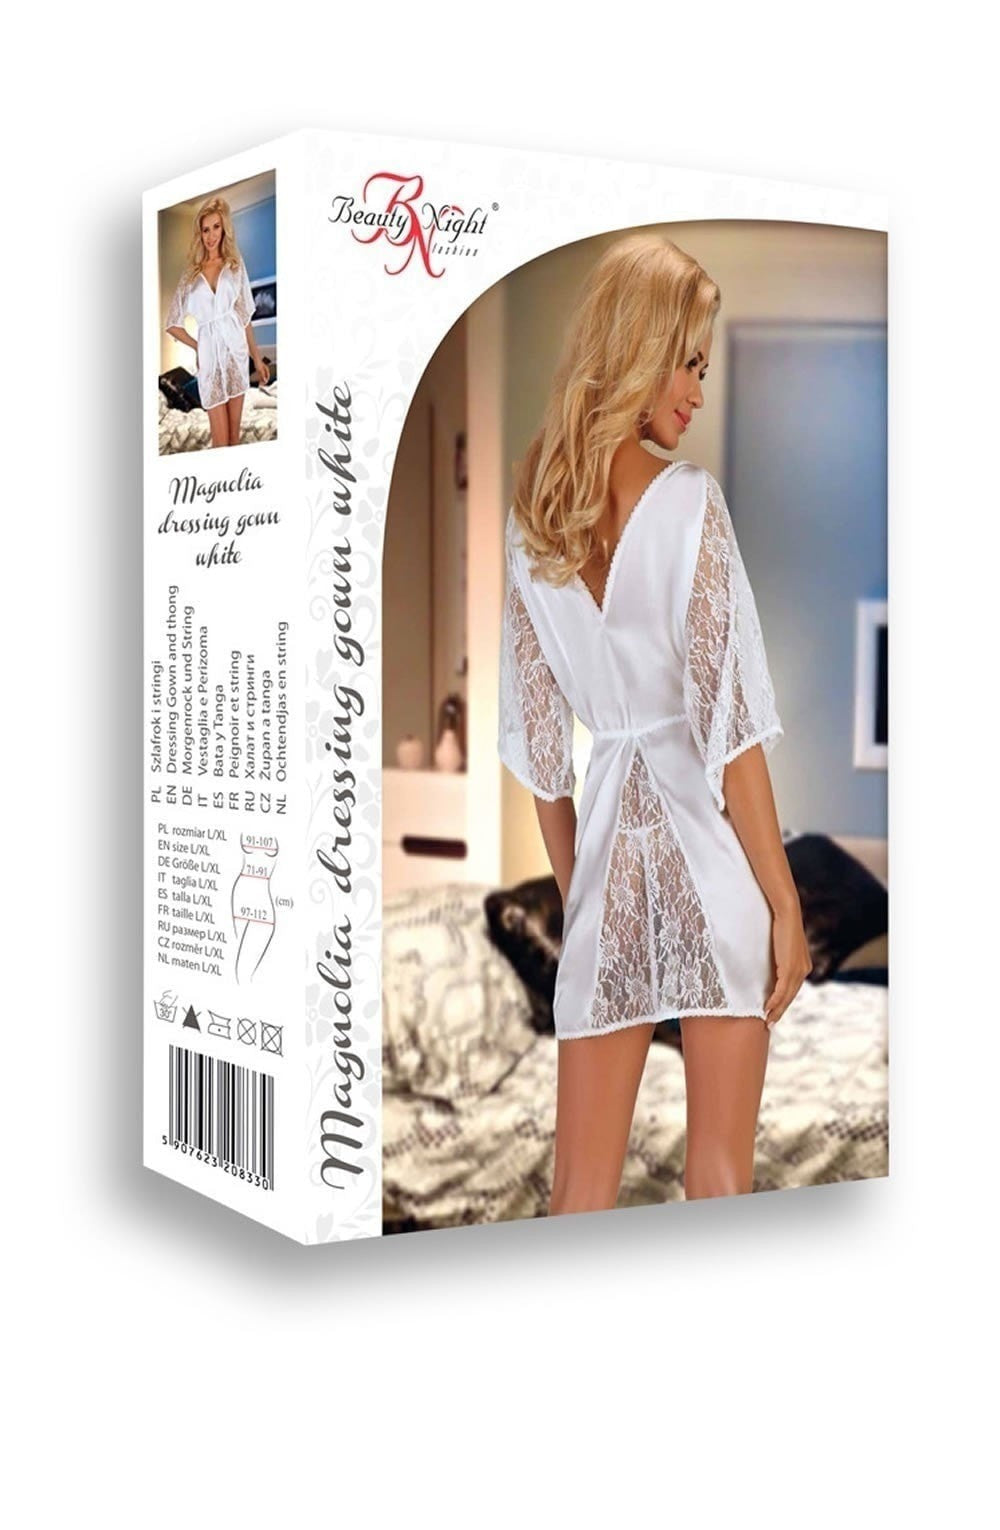 Beauty Night Magnolia Dressing Gown (White) at Charm and Lace Boutique